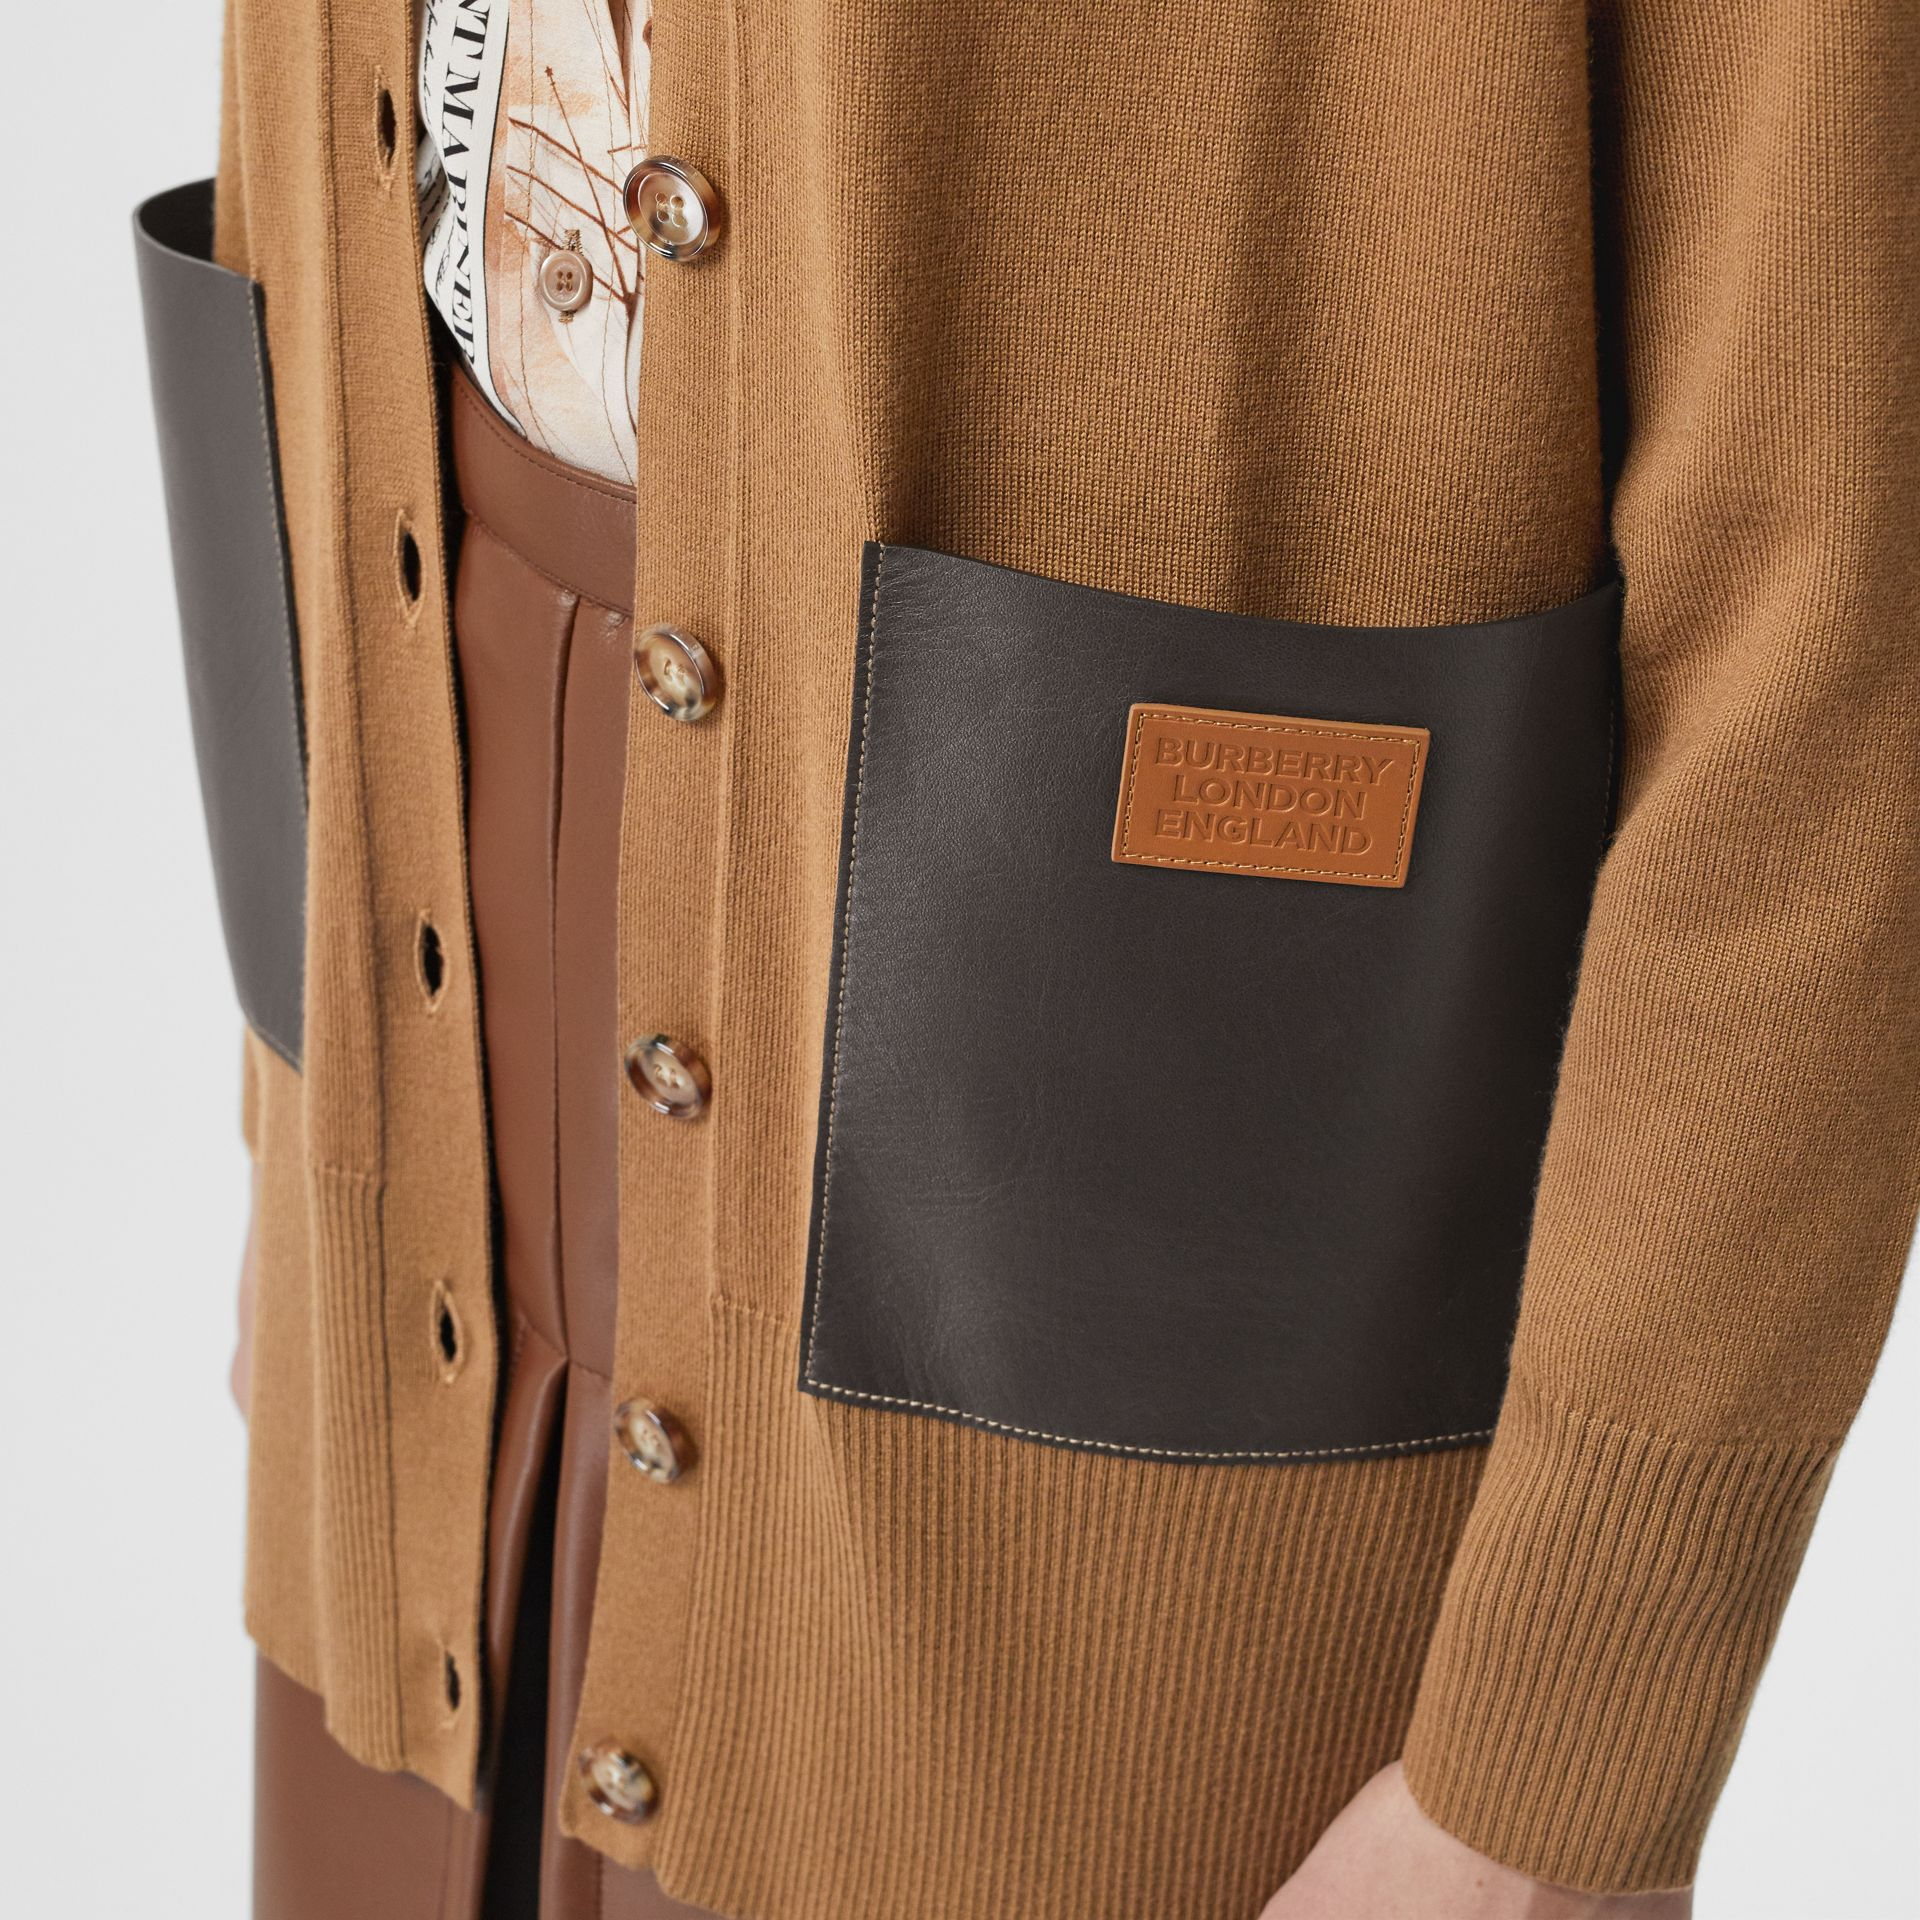 Lambskin Pocket Merino Wool Cardigan in Warm Walnut - Women | Burberry - gallery image 4